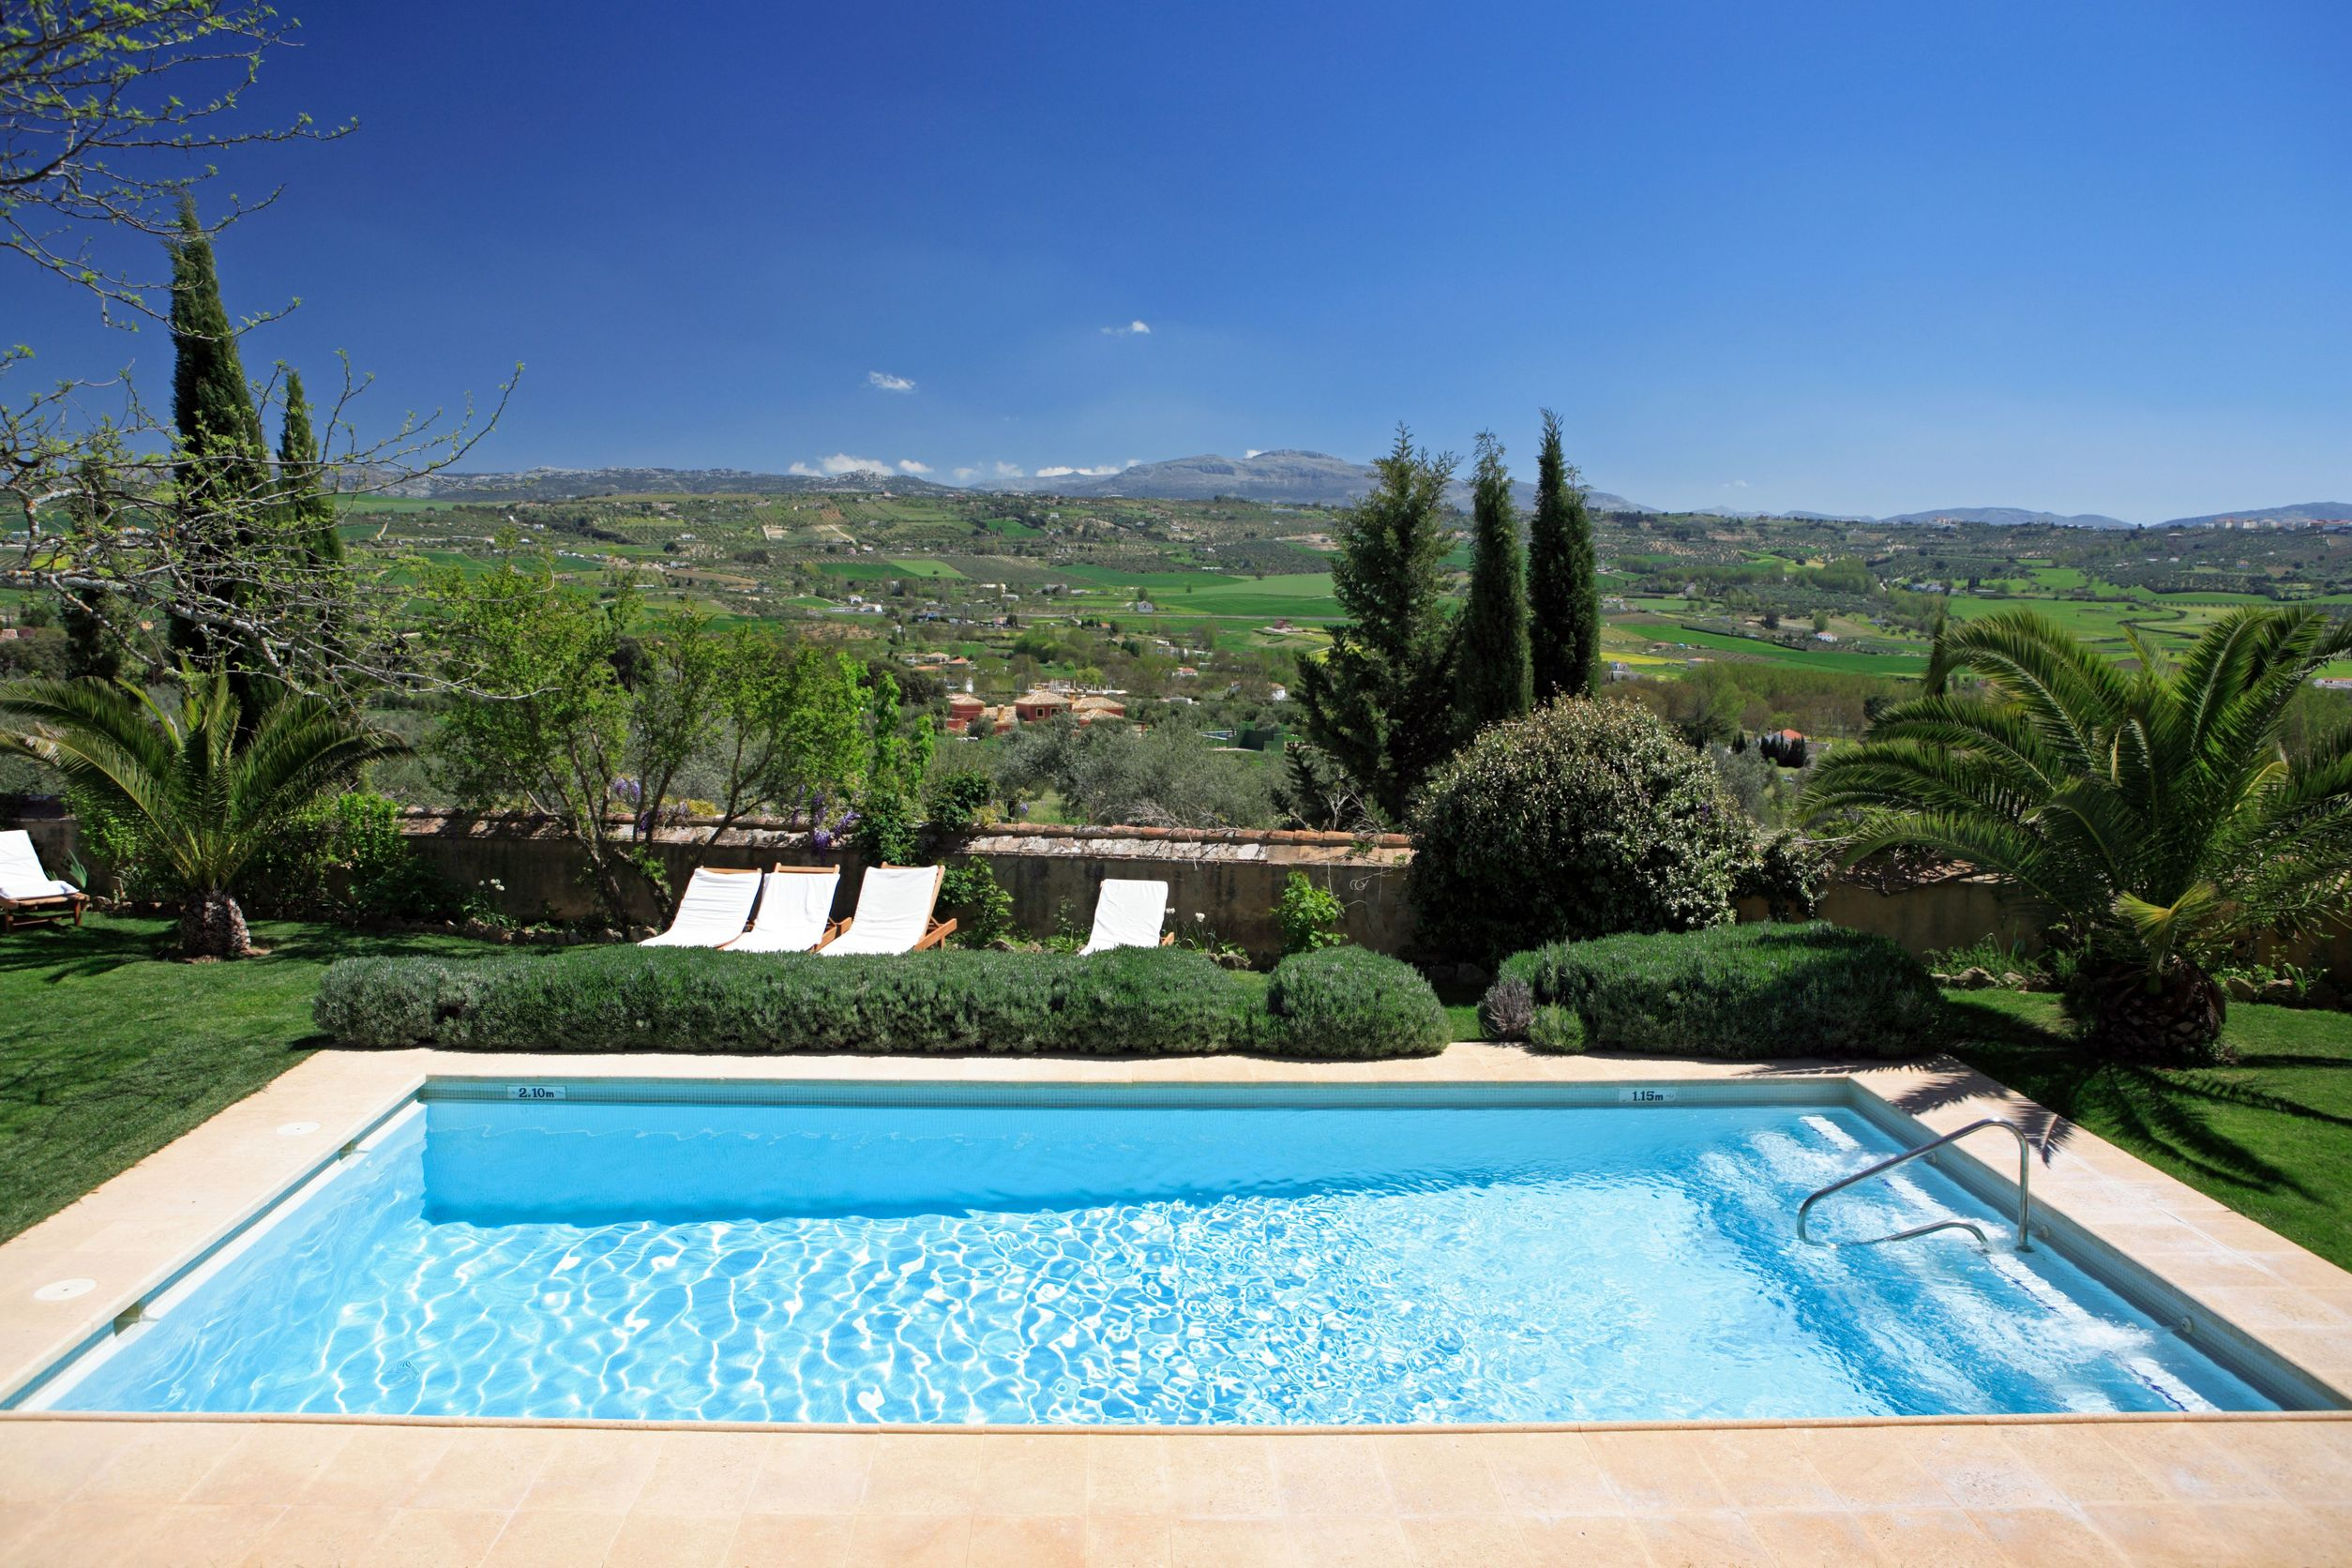 2220279 - large rustic hotel and swimming pool set in beautiful gardens in the spanish countryside with stunning views over the fields below